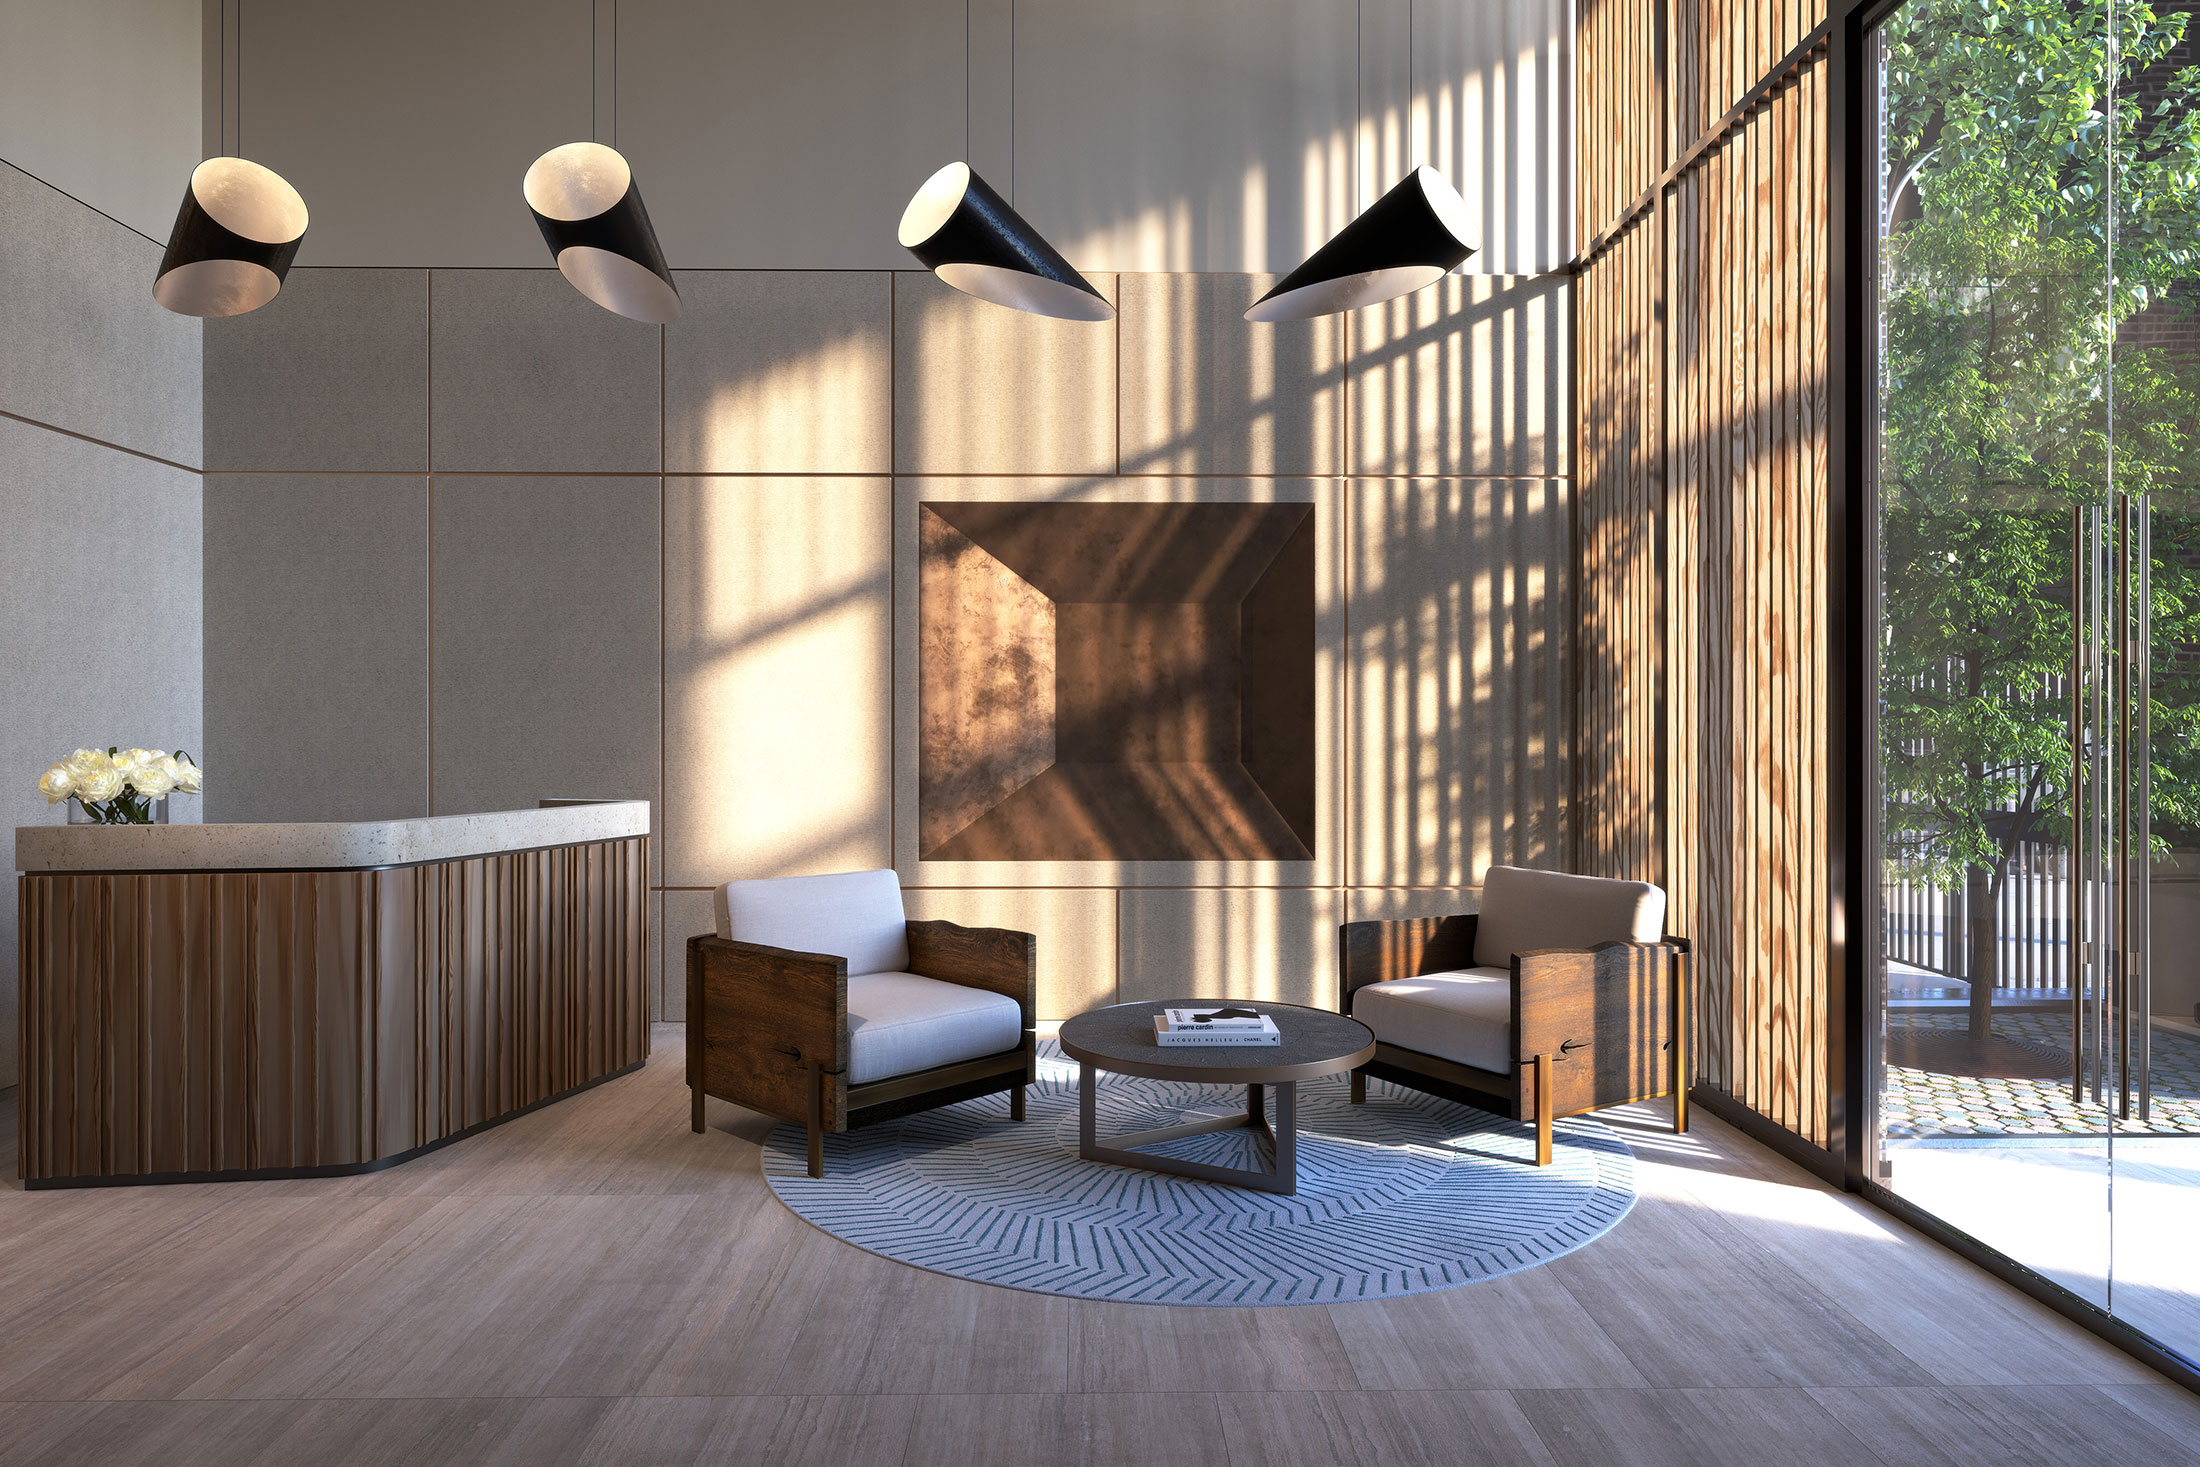 Architectural Rendering of the lobby of the 212W93 project located on the Upper West Side, New York City